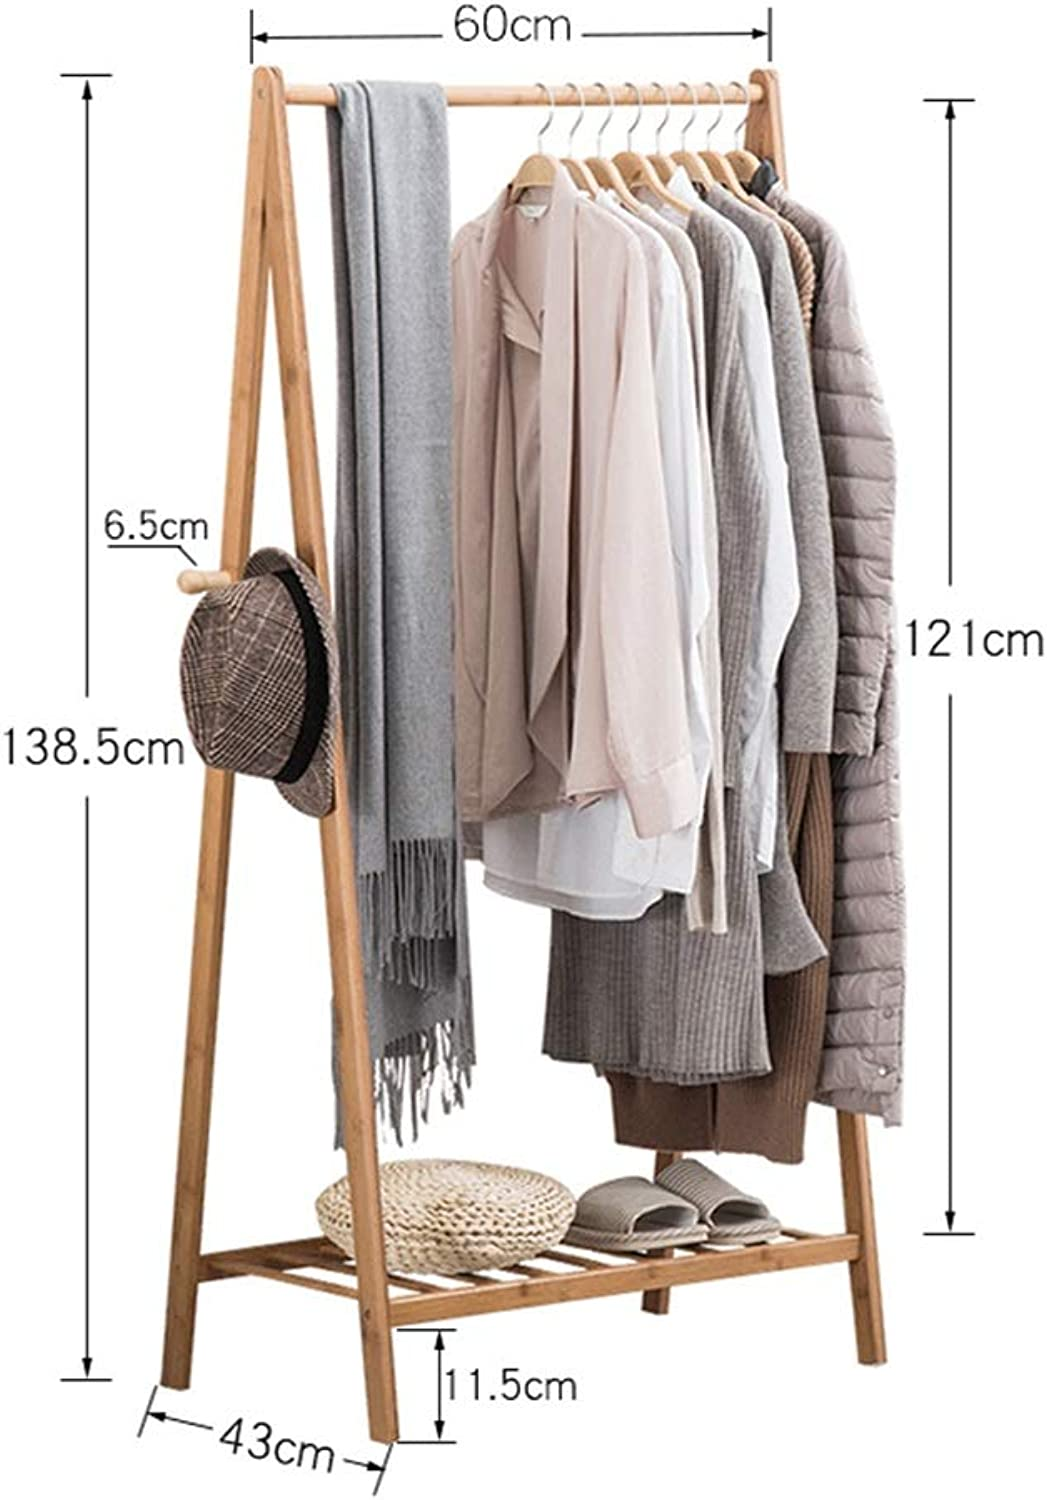 Chunlan Coat rack Bamboo Coat Rack Landing Bedroom Living Room Hanger Multifunction with shoes Rack Available in A Variety of Sizes (Size   60  43  138cm)